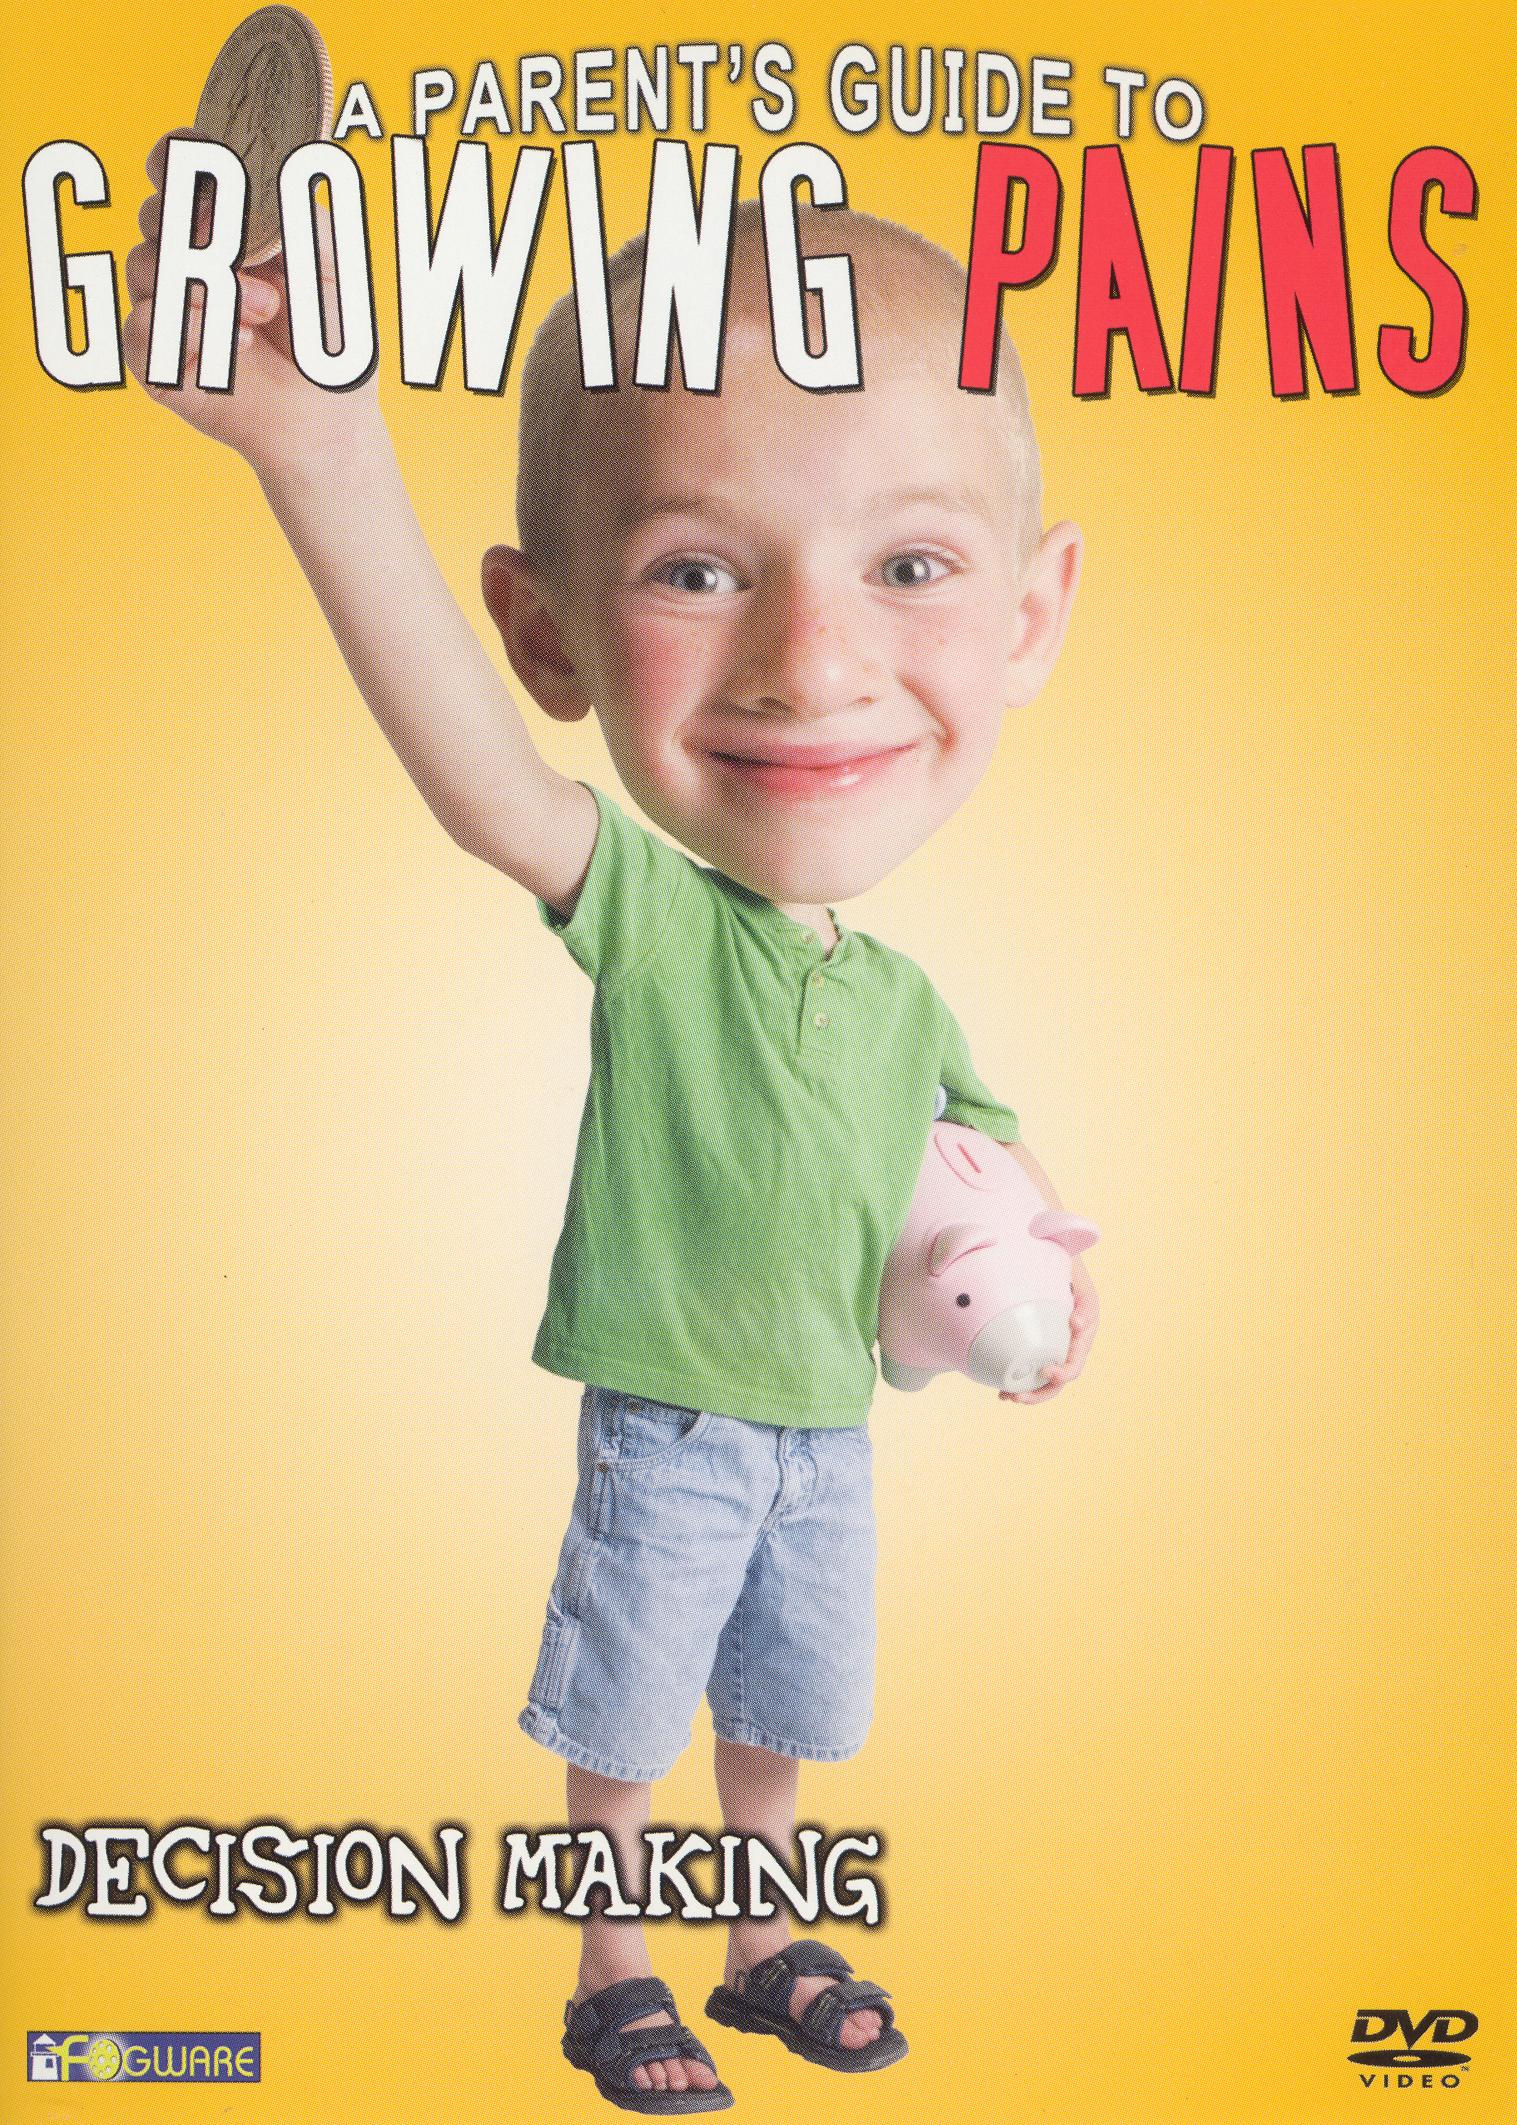 A Parent's Guide to Growing Pains: Decision Making